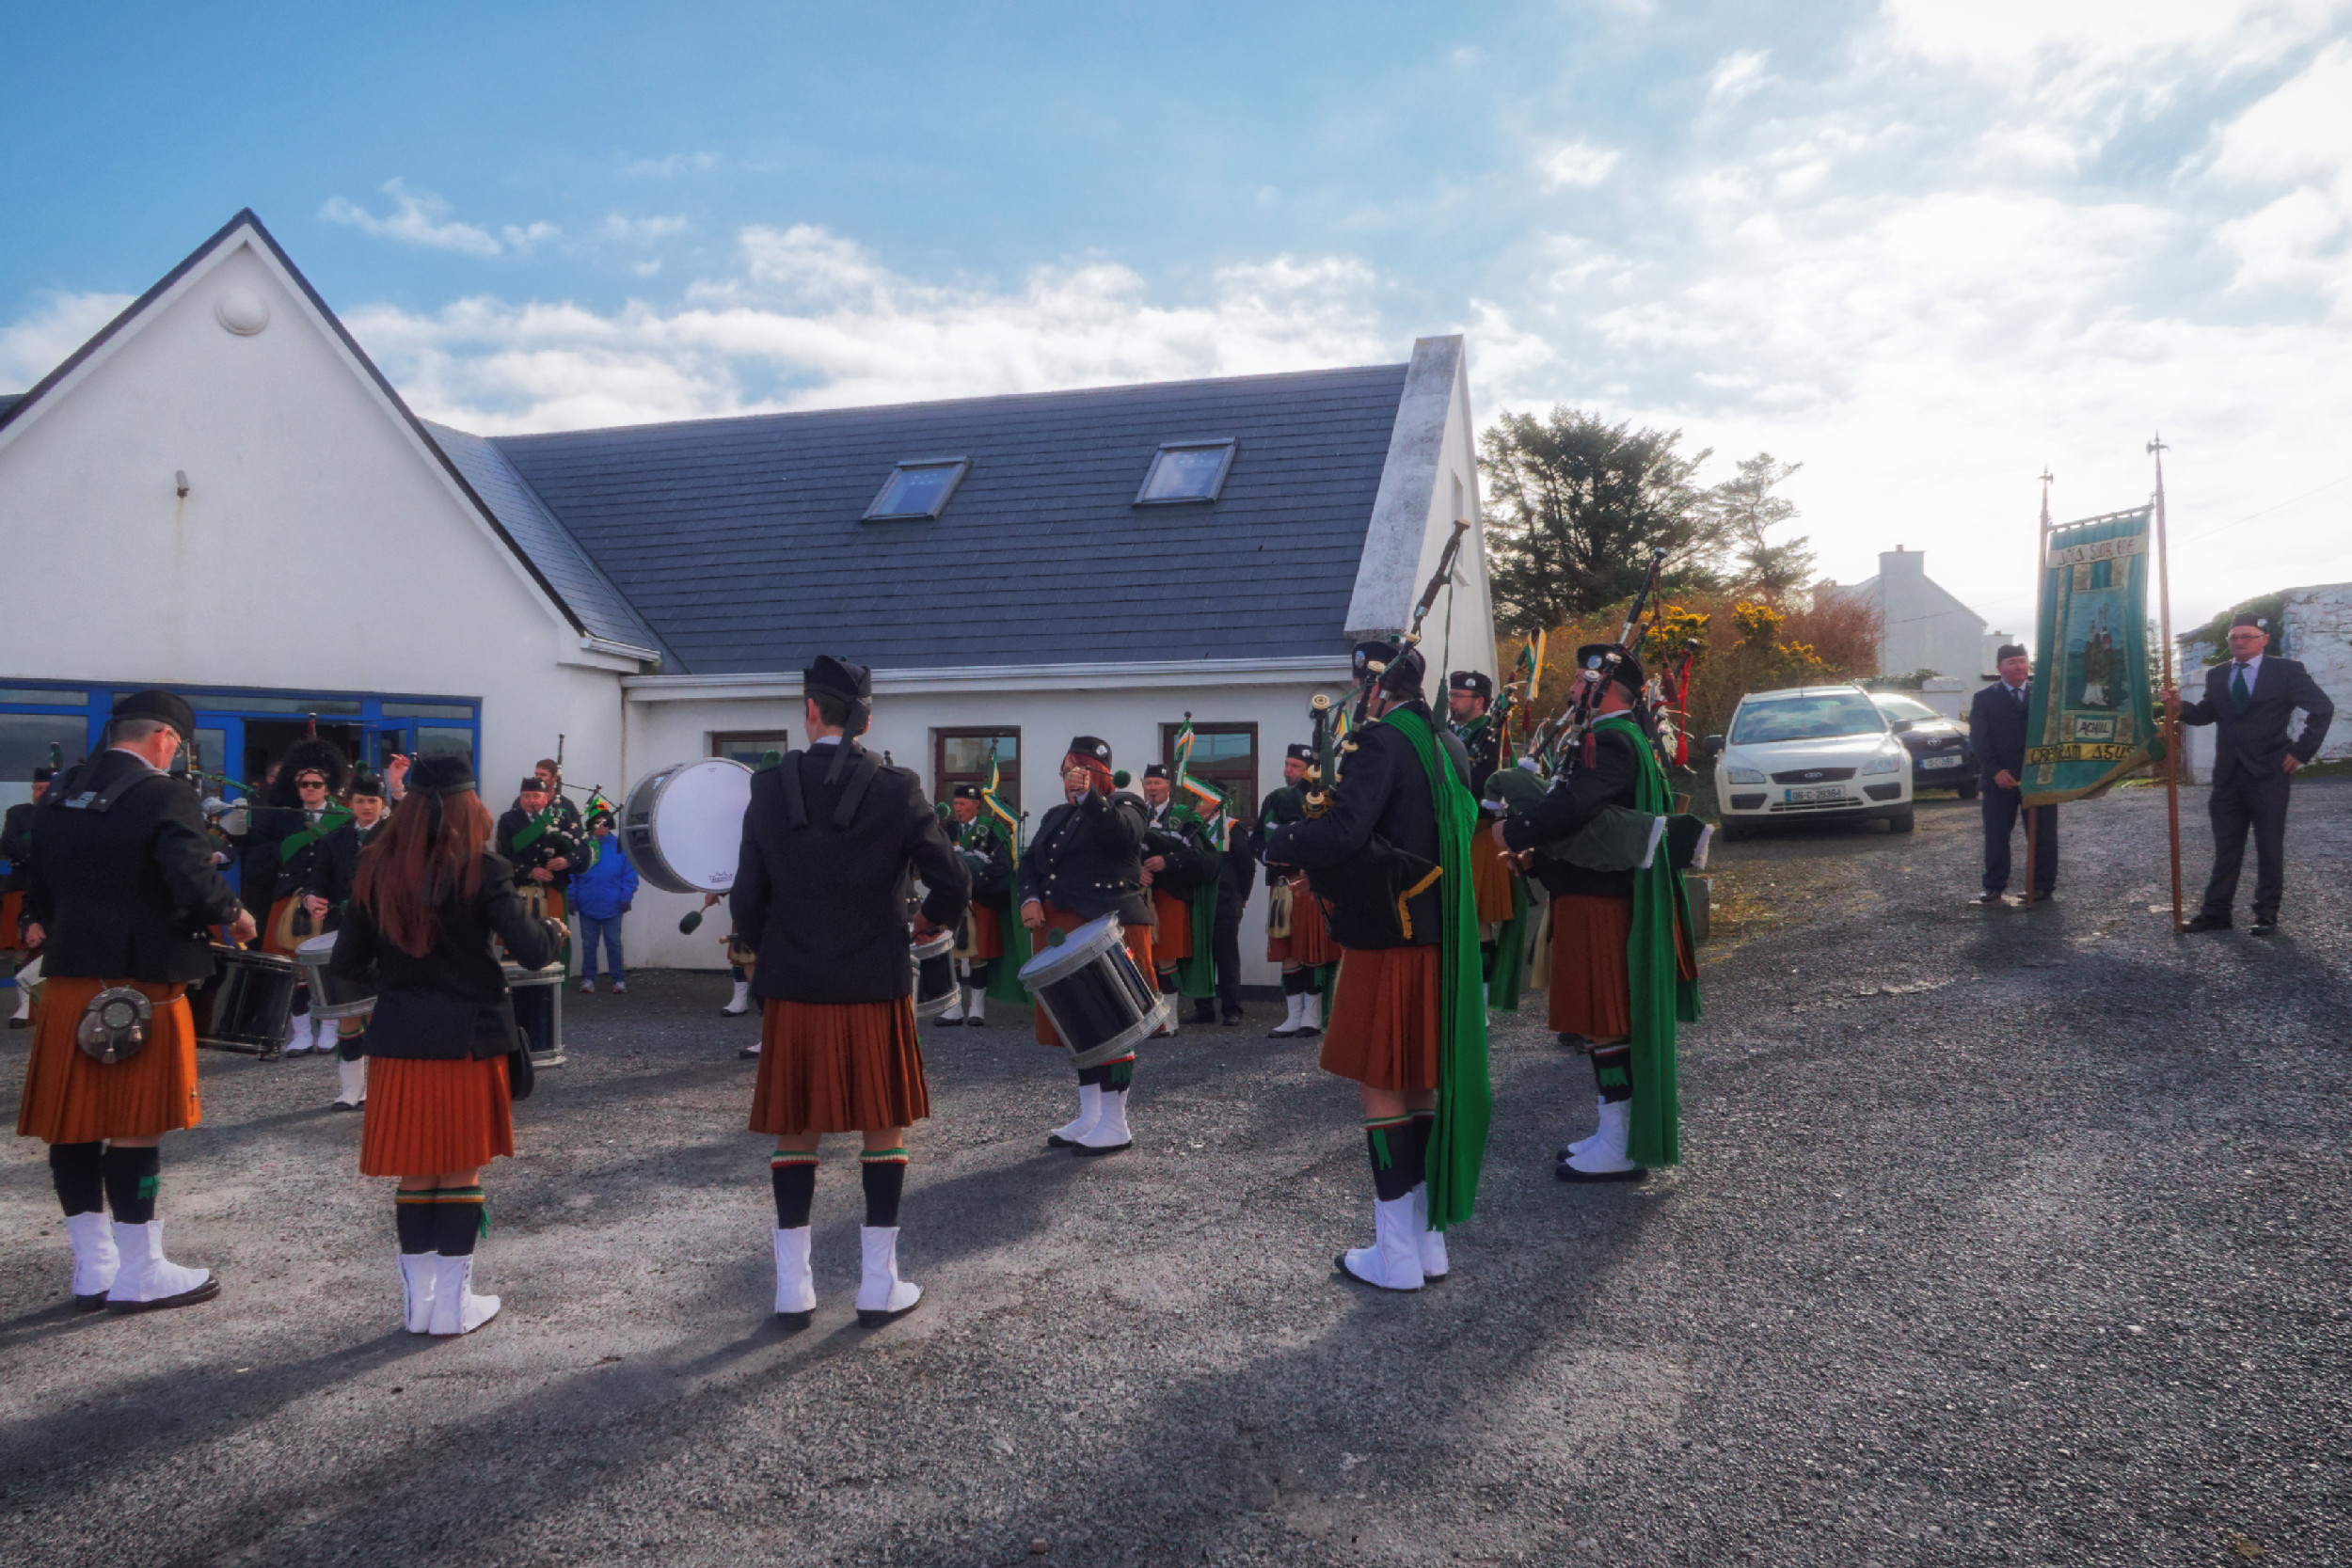 20160320131429-ie-achill-sound_parade-_DxO_13in_DxO96